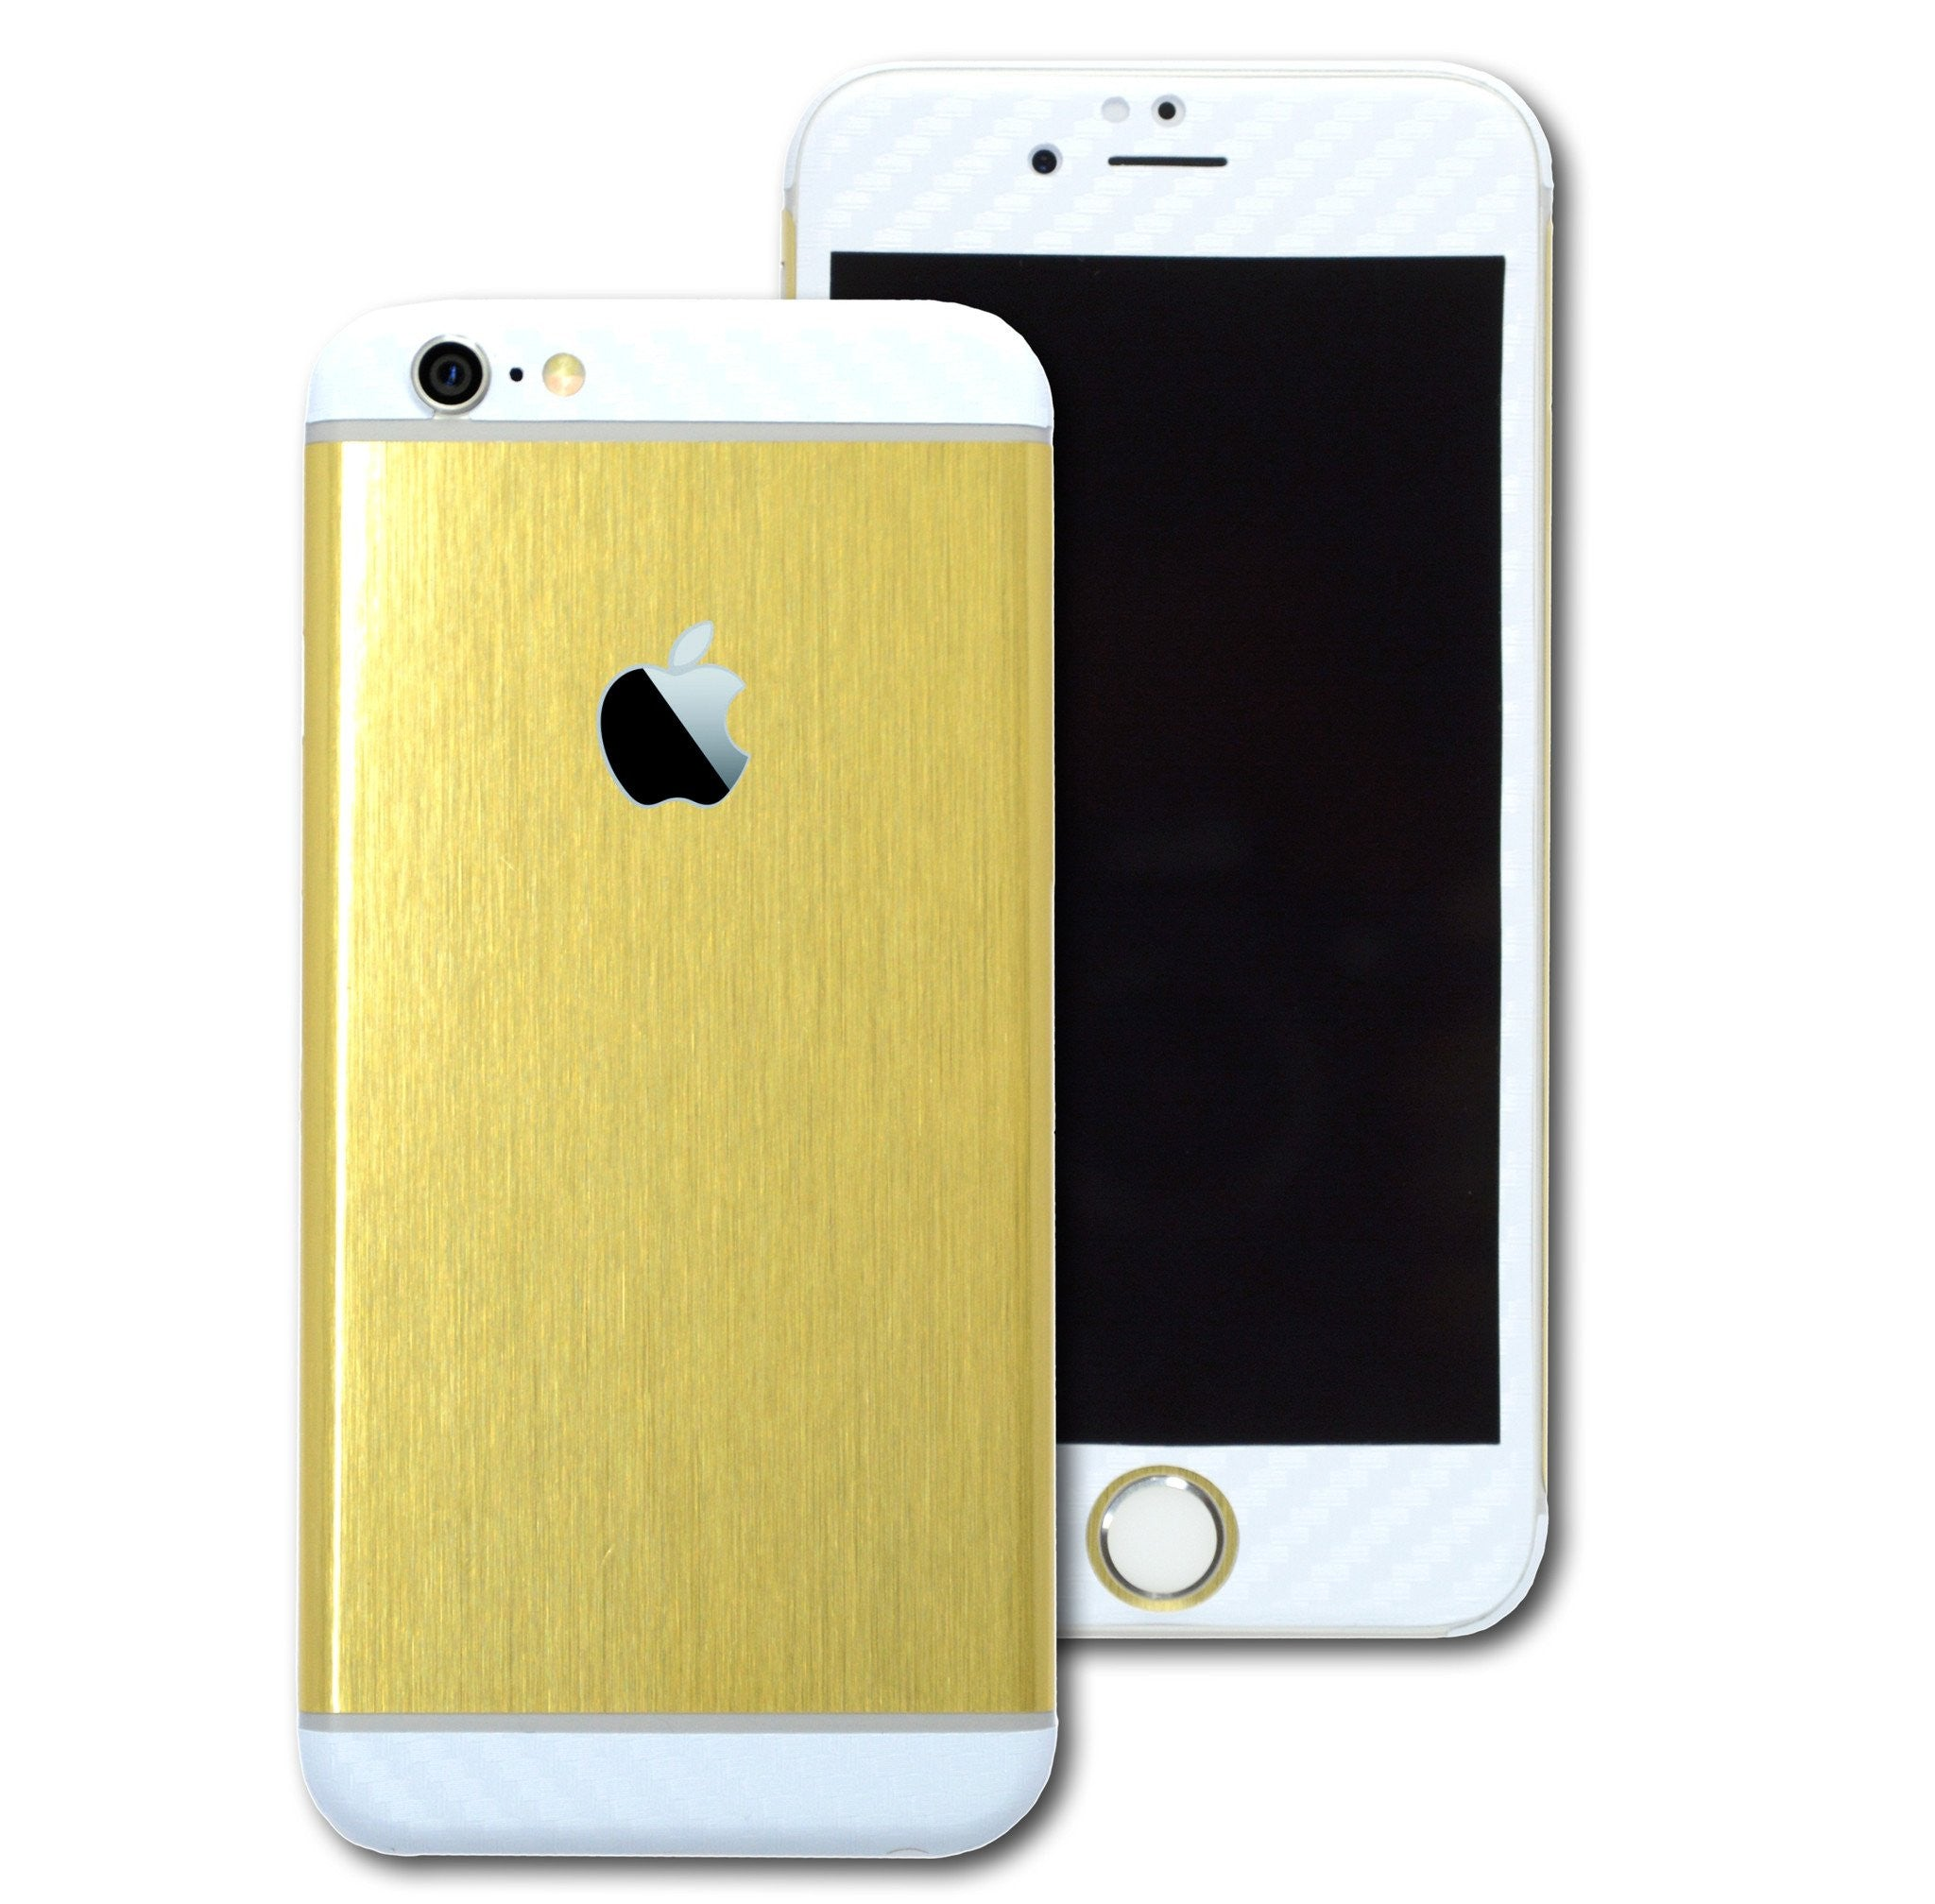 iphone 6 plus brushed gold with white carbon skin wrap. Black Bedroom Furniture Sets. Home Design Ideas